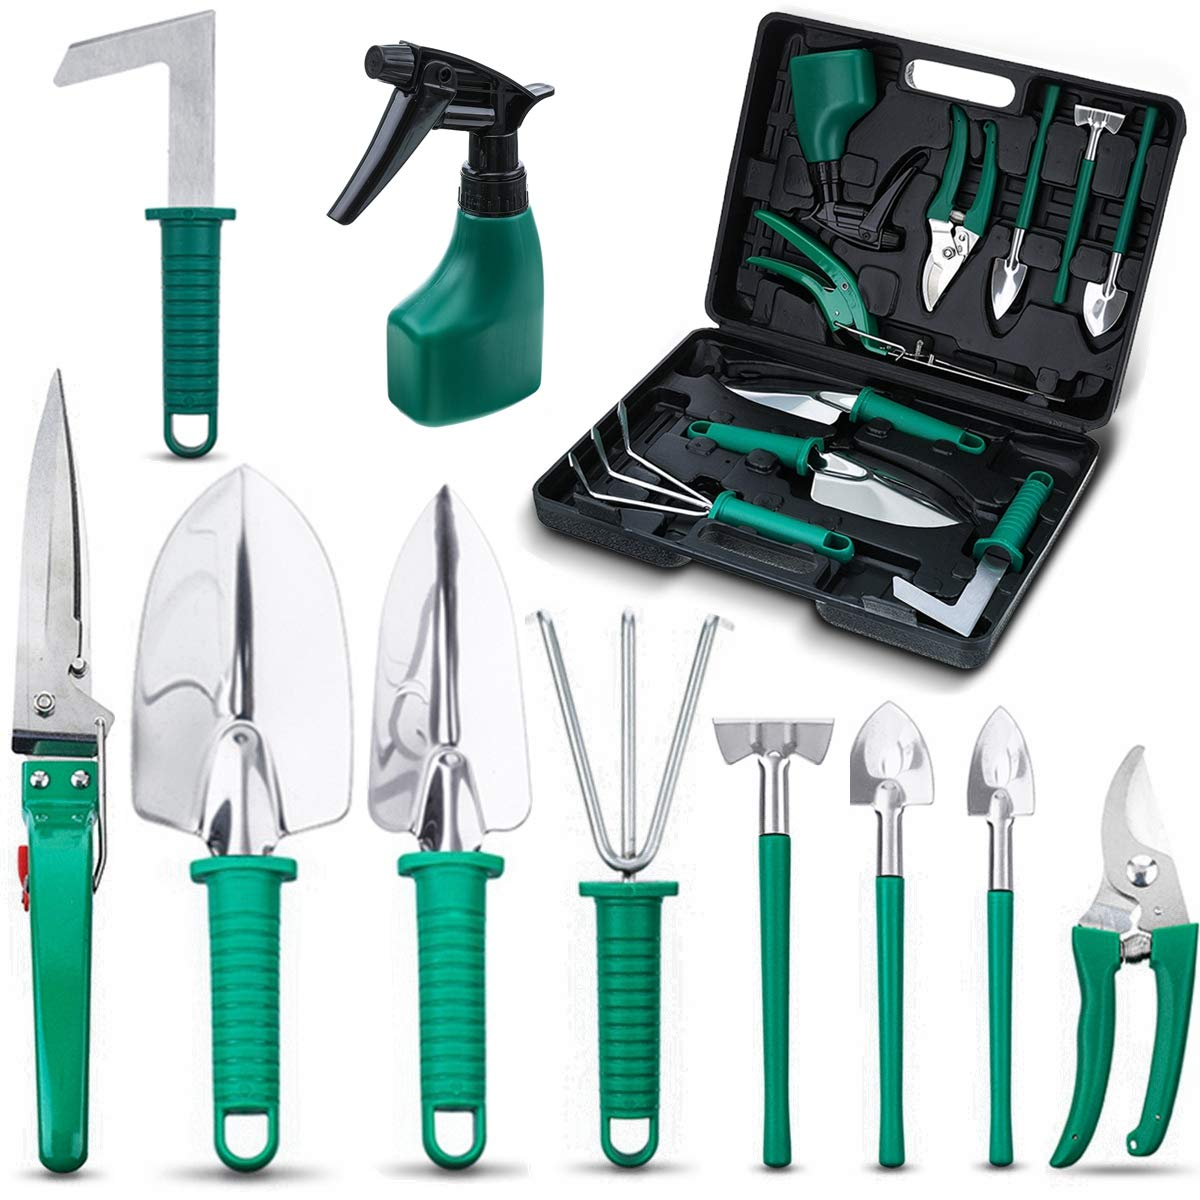 NASUM 10 Pieces Garden Tools Set – Stainless Steel Gardening Tool Case with Trowel Pruner,Rakes, Shovels,Secateurs,Weeding Knife and more,Vegetable Herb Garden Hand Tools,Gifts for Women Man